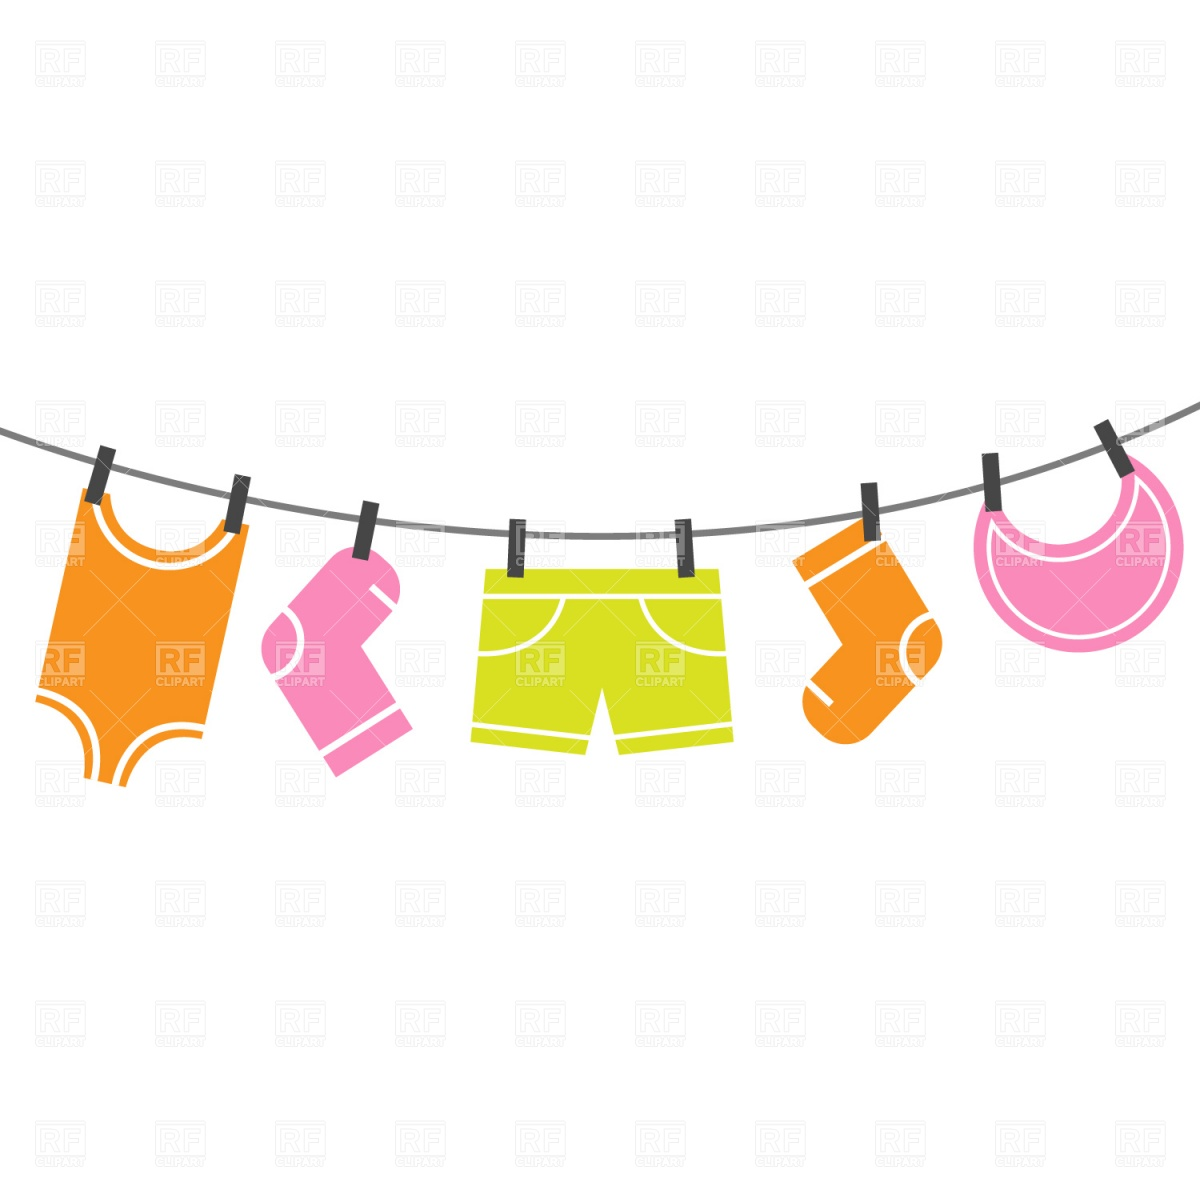 Clothes on clothesline clipart png royalty free Clothing Clip Art Kids | Clipart Panda - Free Clipart Images png royalty free